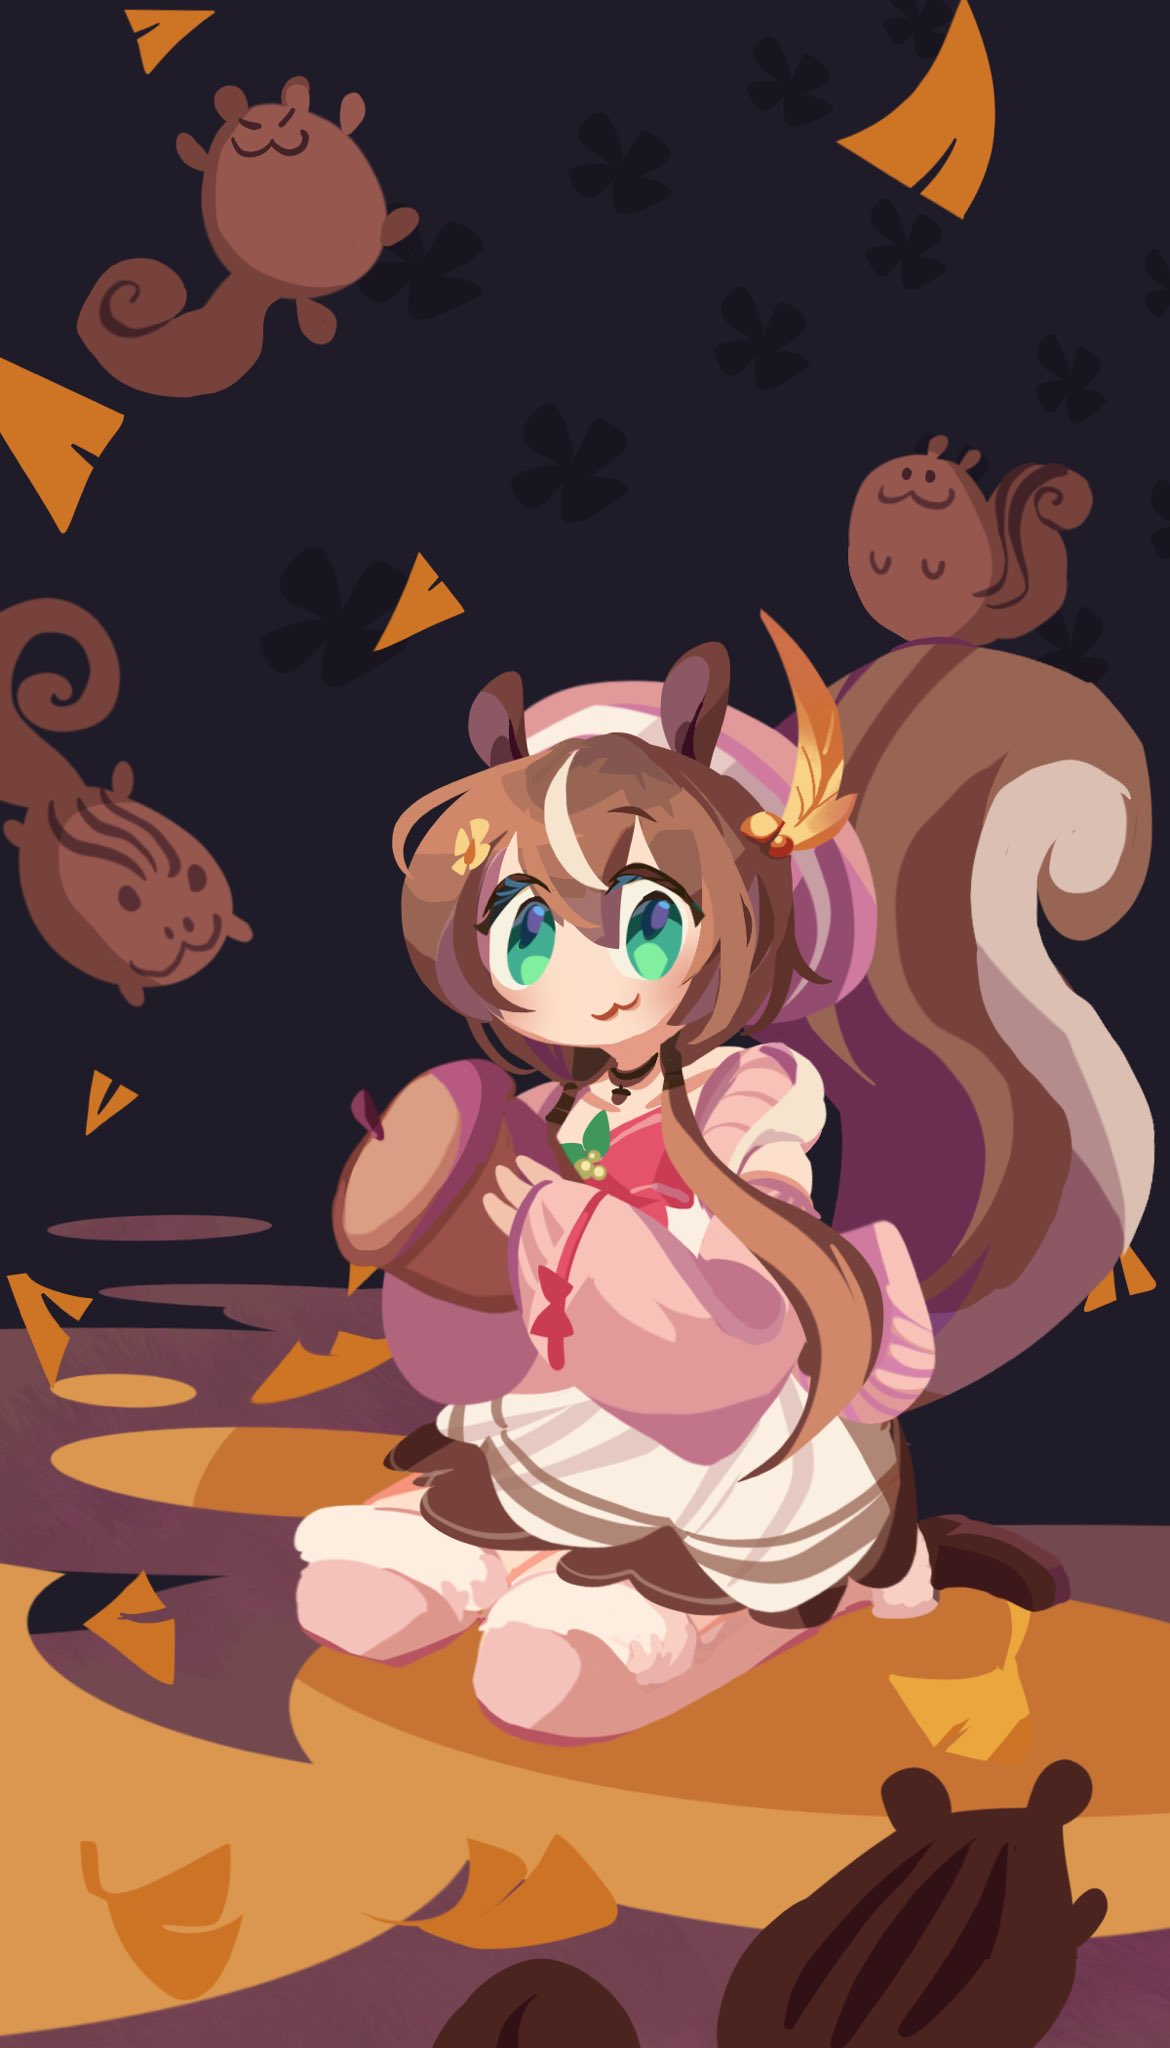 1girl :3 acorn animal_ears autumn_leaves ayunda_risu beret brown_hair choker flower green_eyes hair_flower hair_leaf hair_ornament hat highres hololive hololive_indonesia long_hair looking_at_viewer pink_headwear pink_sweater solo squirrel squirrel_ears squirrel_girl squirrel_tail sweater tail twintails virtual_youtuber xyzal